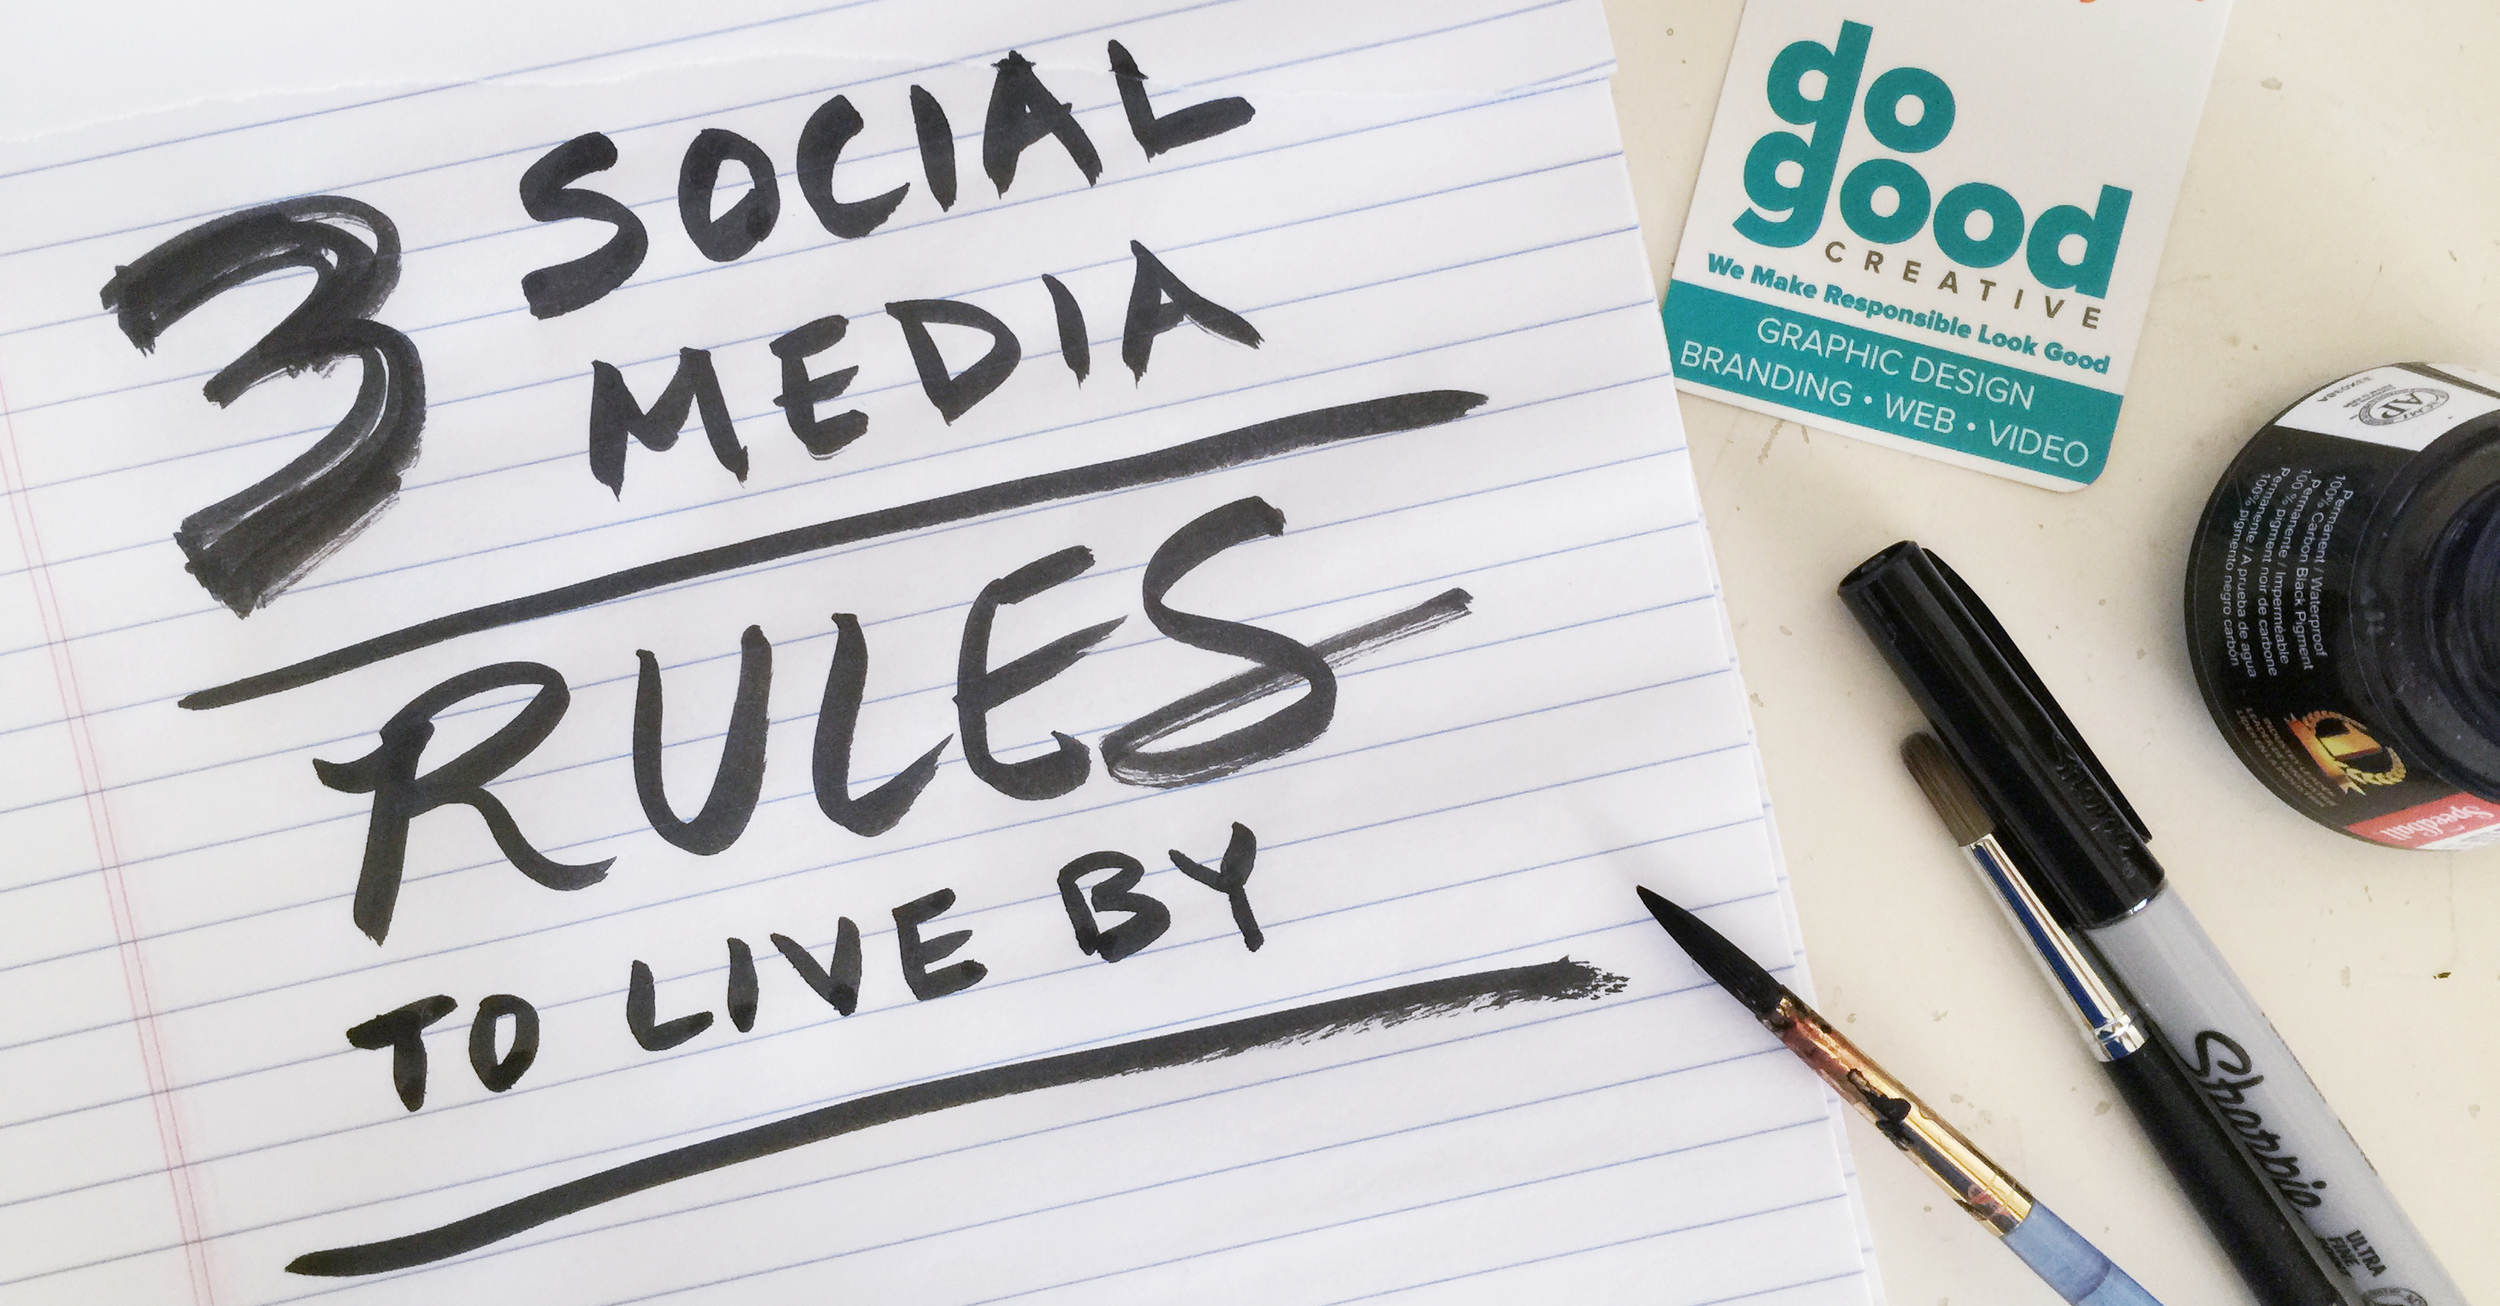 3 social media rules to live by